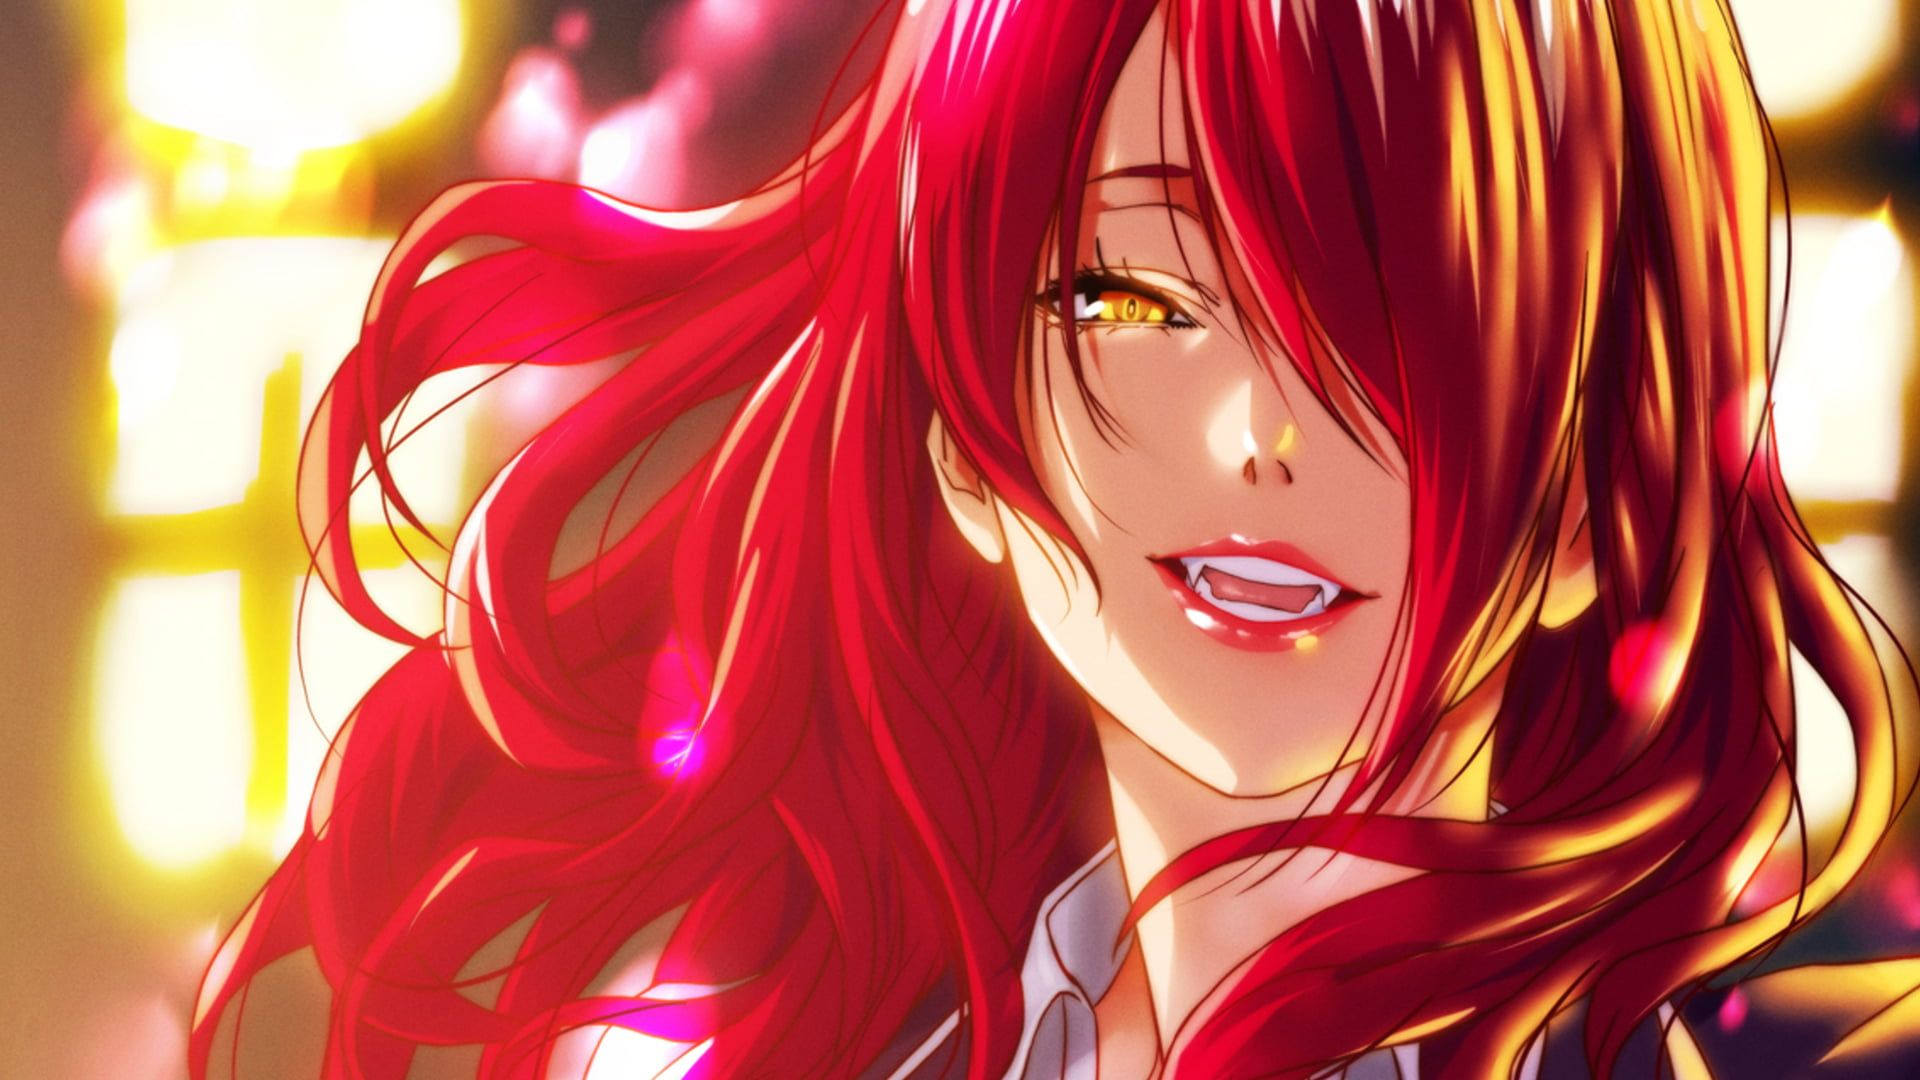 Red Head Anime Wallpapers - Wallpaper Cave